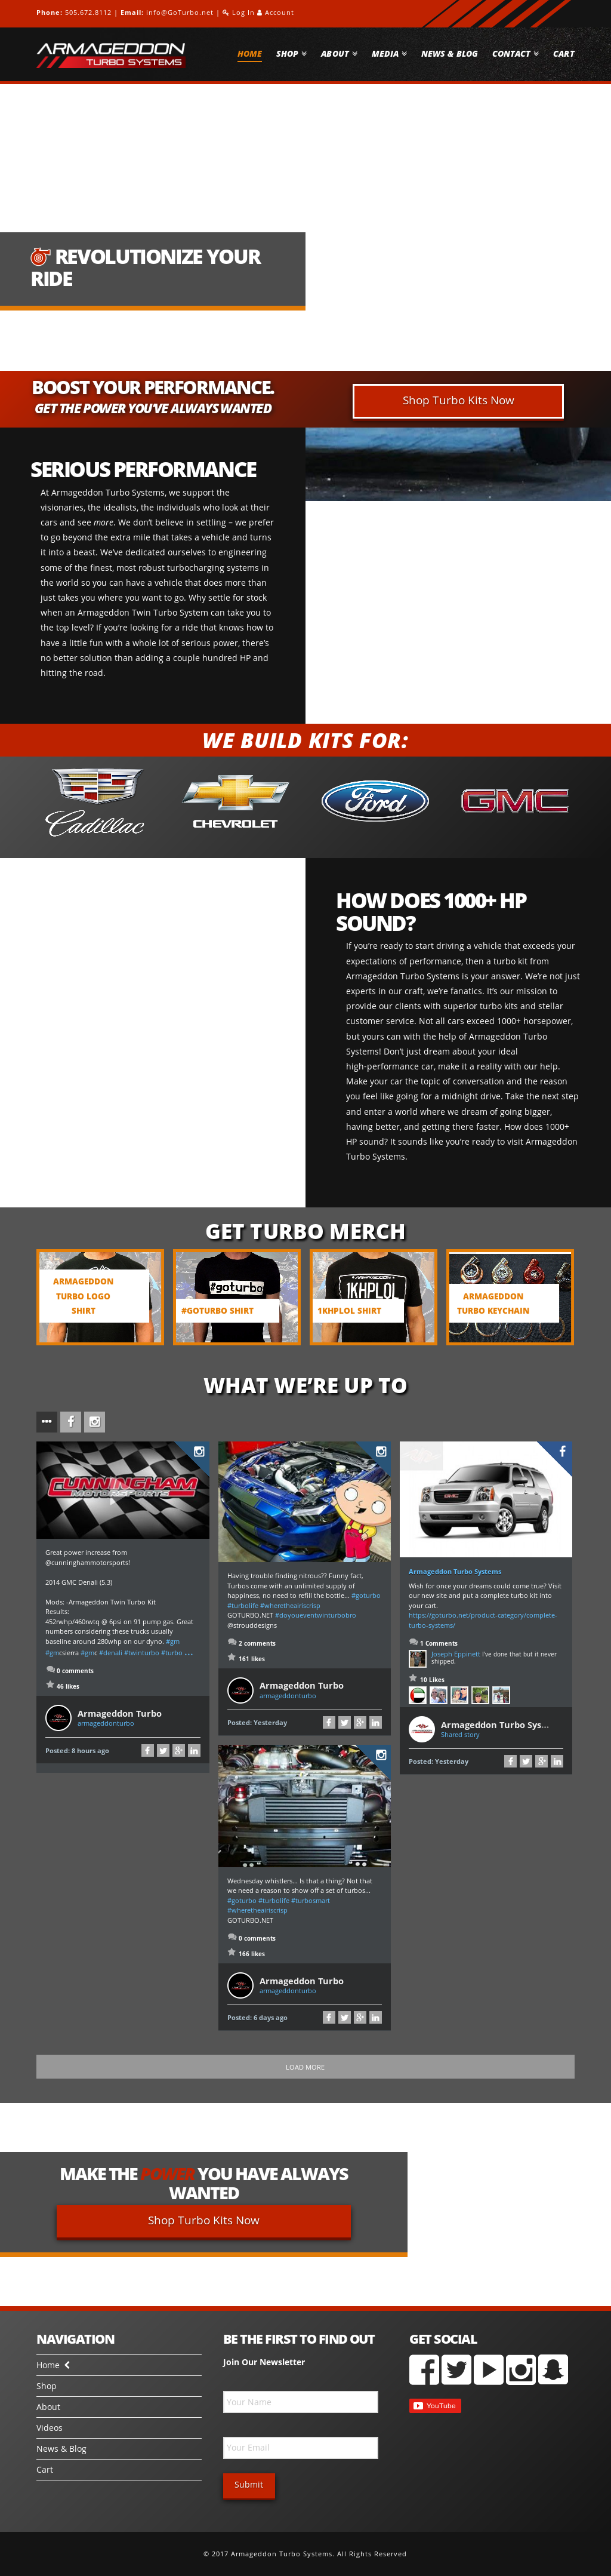 Armageddon Turbo Systems Competitors, Revenue and Employees